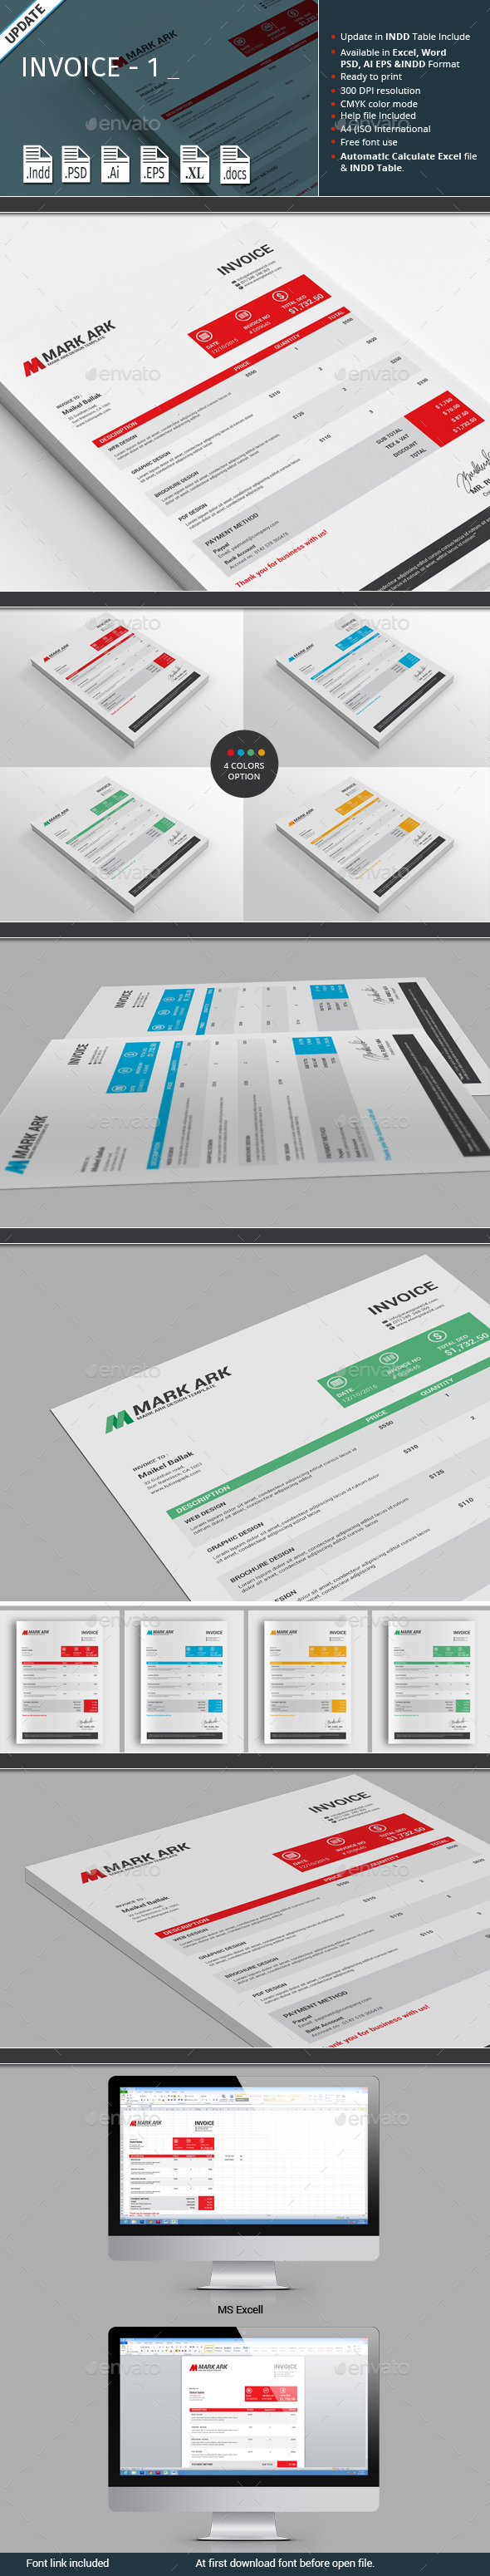 Invoice - 1 - Proposals & Invoices Stationery